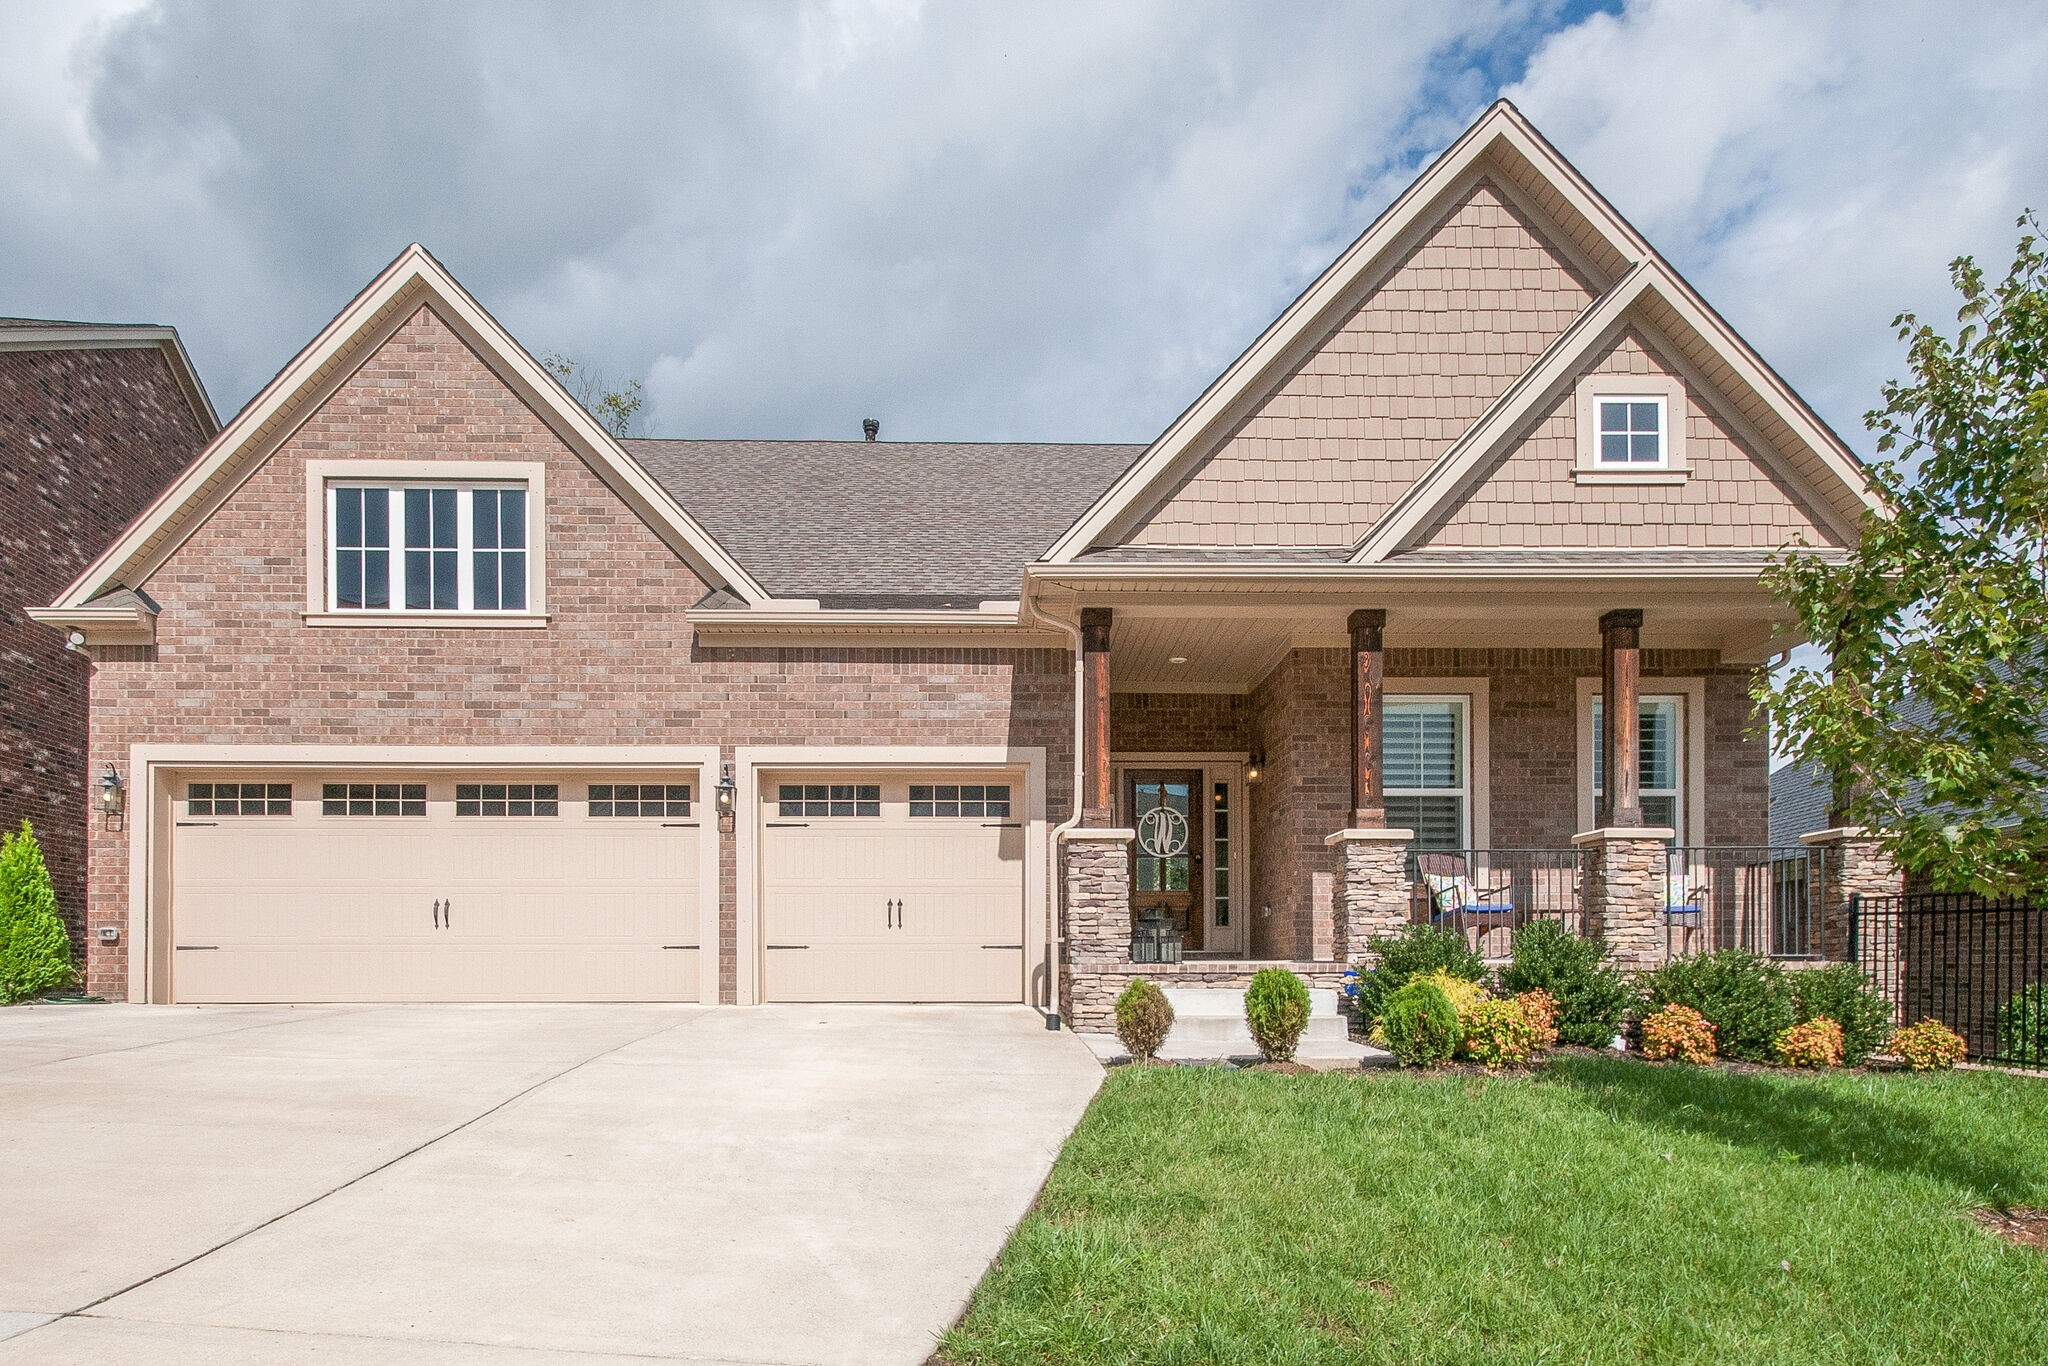 WOW!!! 6 beds, 4 baths, HUGE bonus room,  coffered ceilings, built in bookcases, recessed lights galore, HARDWOODS throughout house, tile bathrooms, amazing plantation shutters,kitchen to die for, 2 beds down, 4 beds up, 3 car garage, stone fireplace, large covered deck,